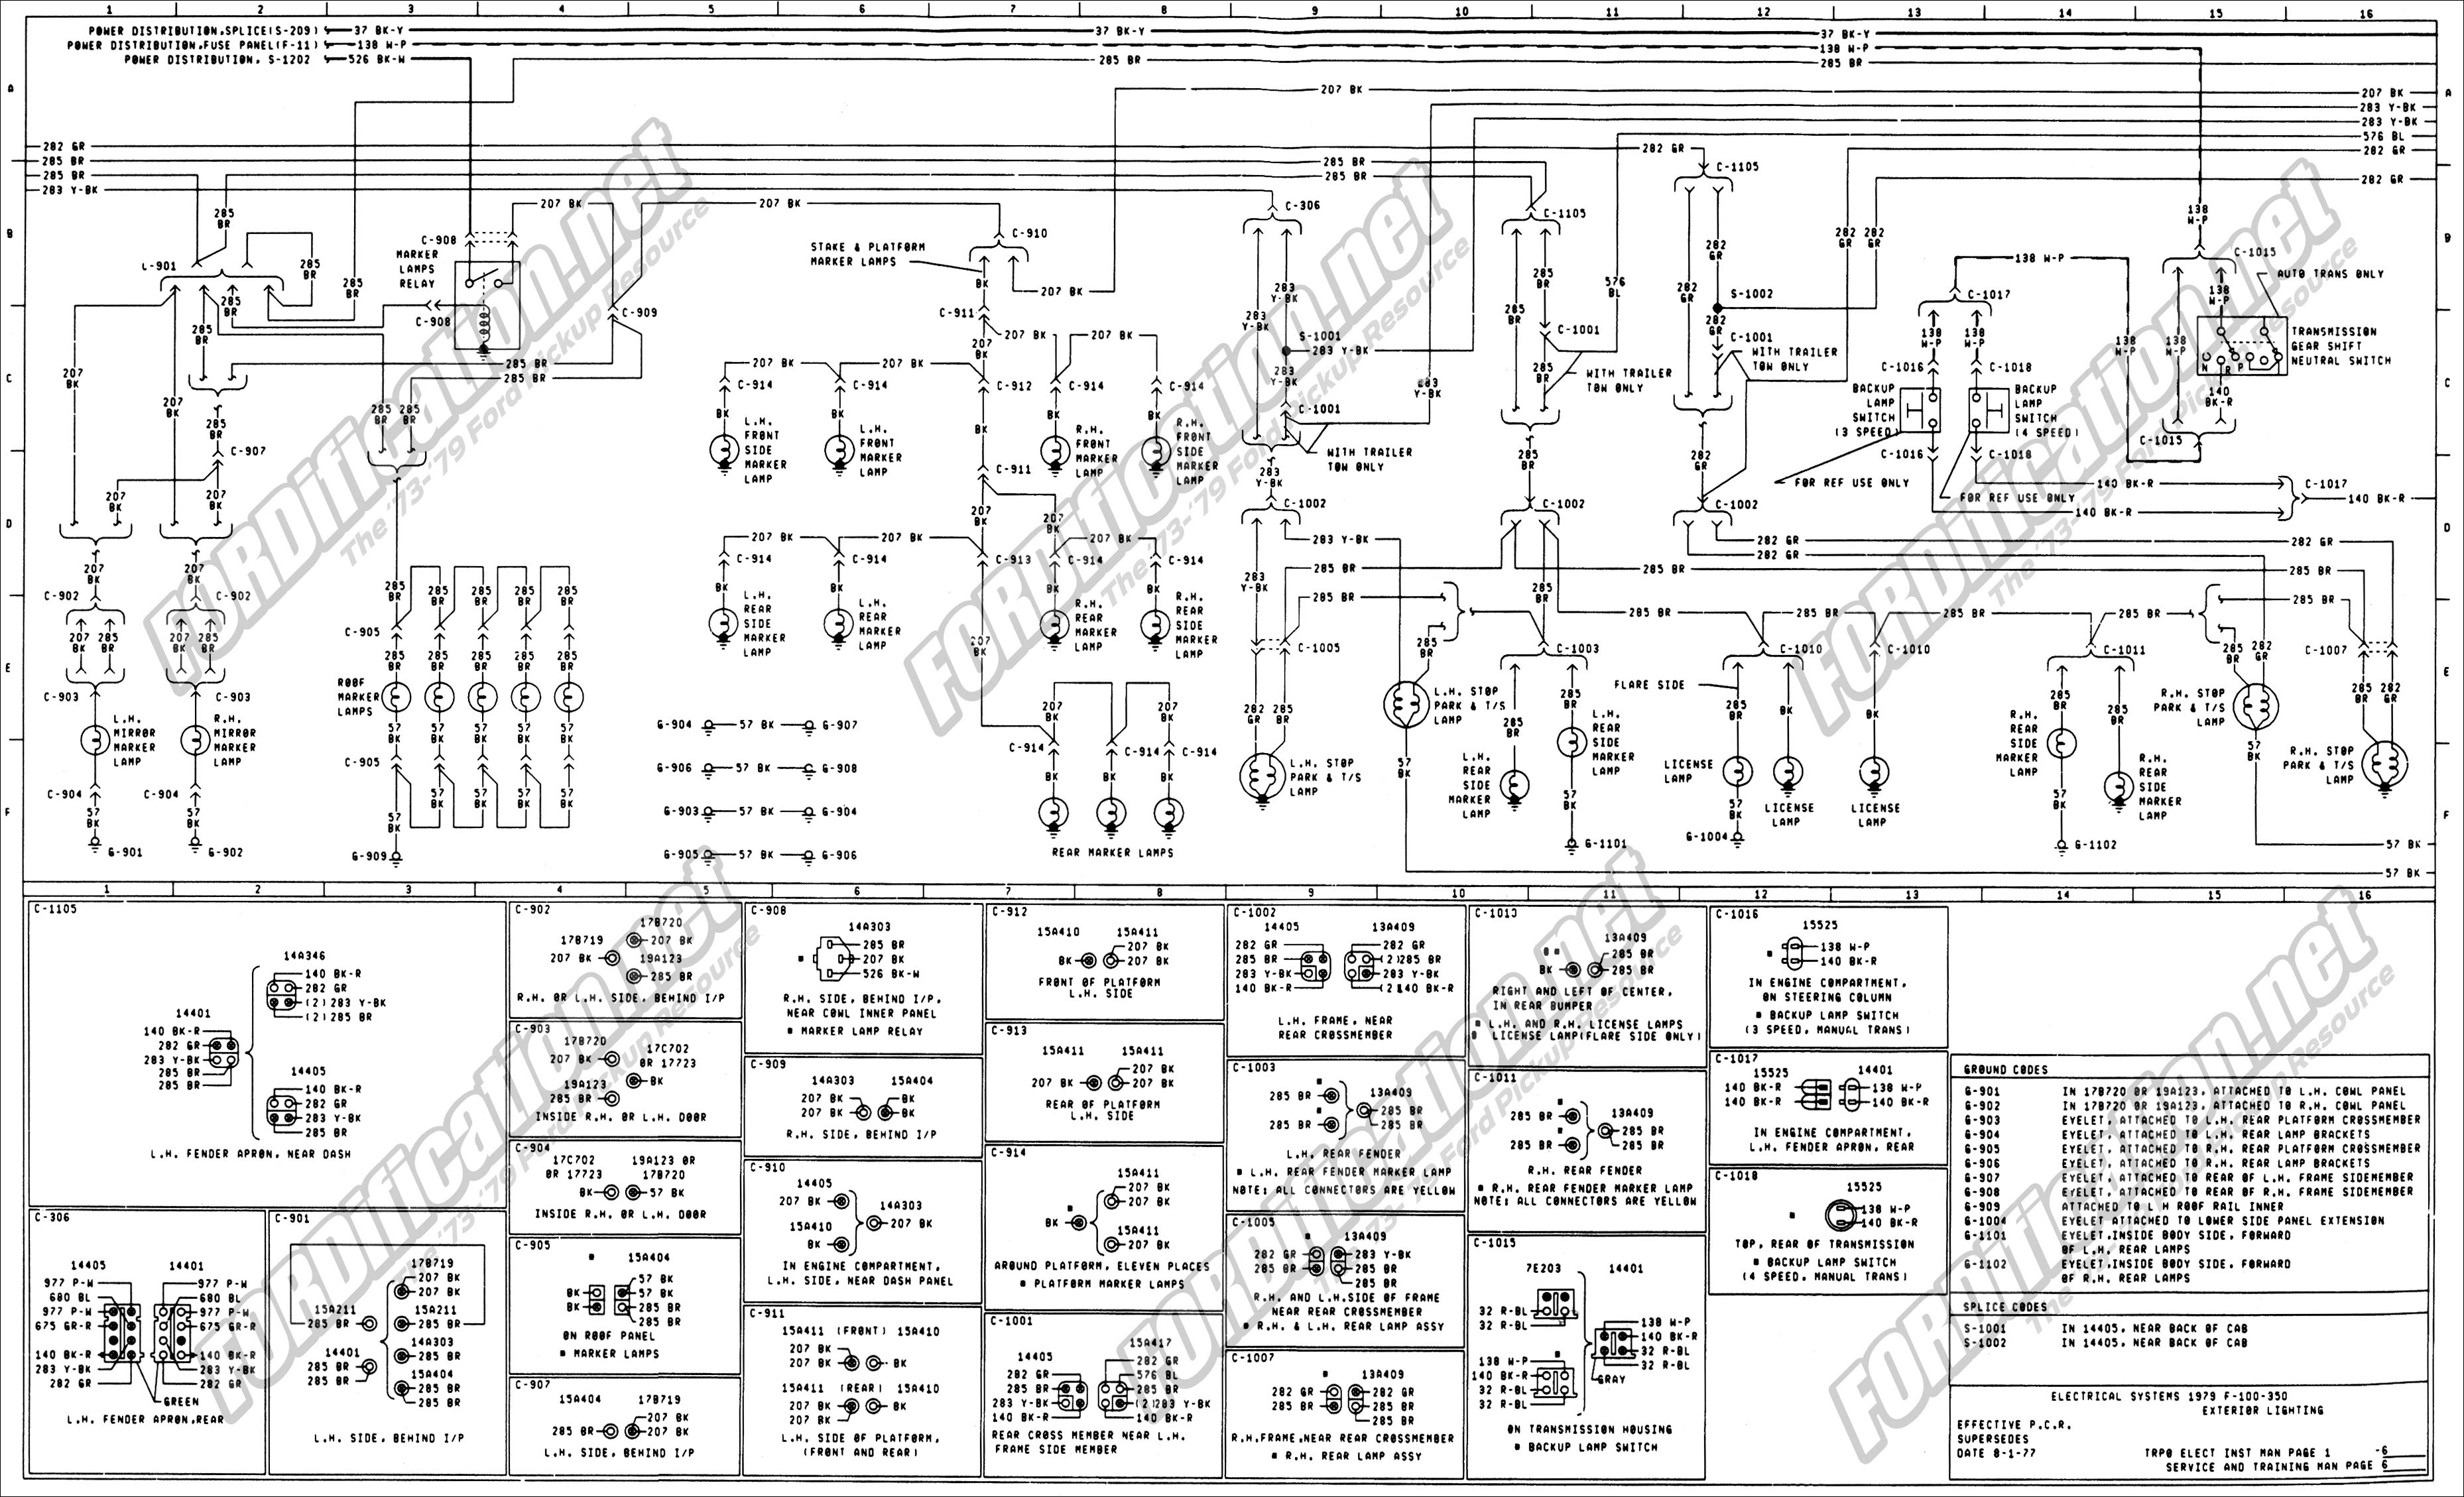 78 ford wiring diagram wiring data diagram1978 ford f150 wiring diagrams wiring diagram data 1977 ford truck wiring diagrams 1978 ford wiring